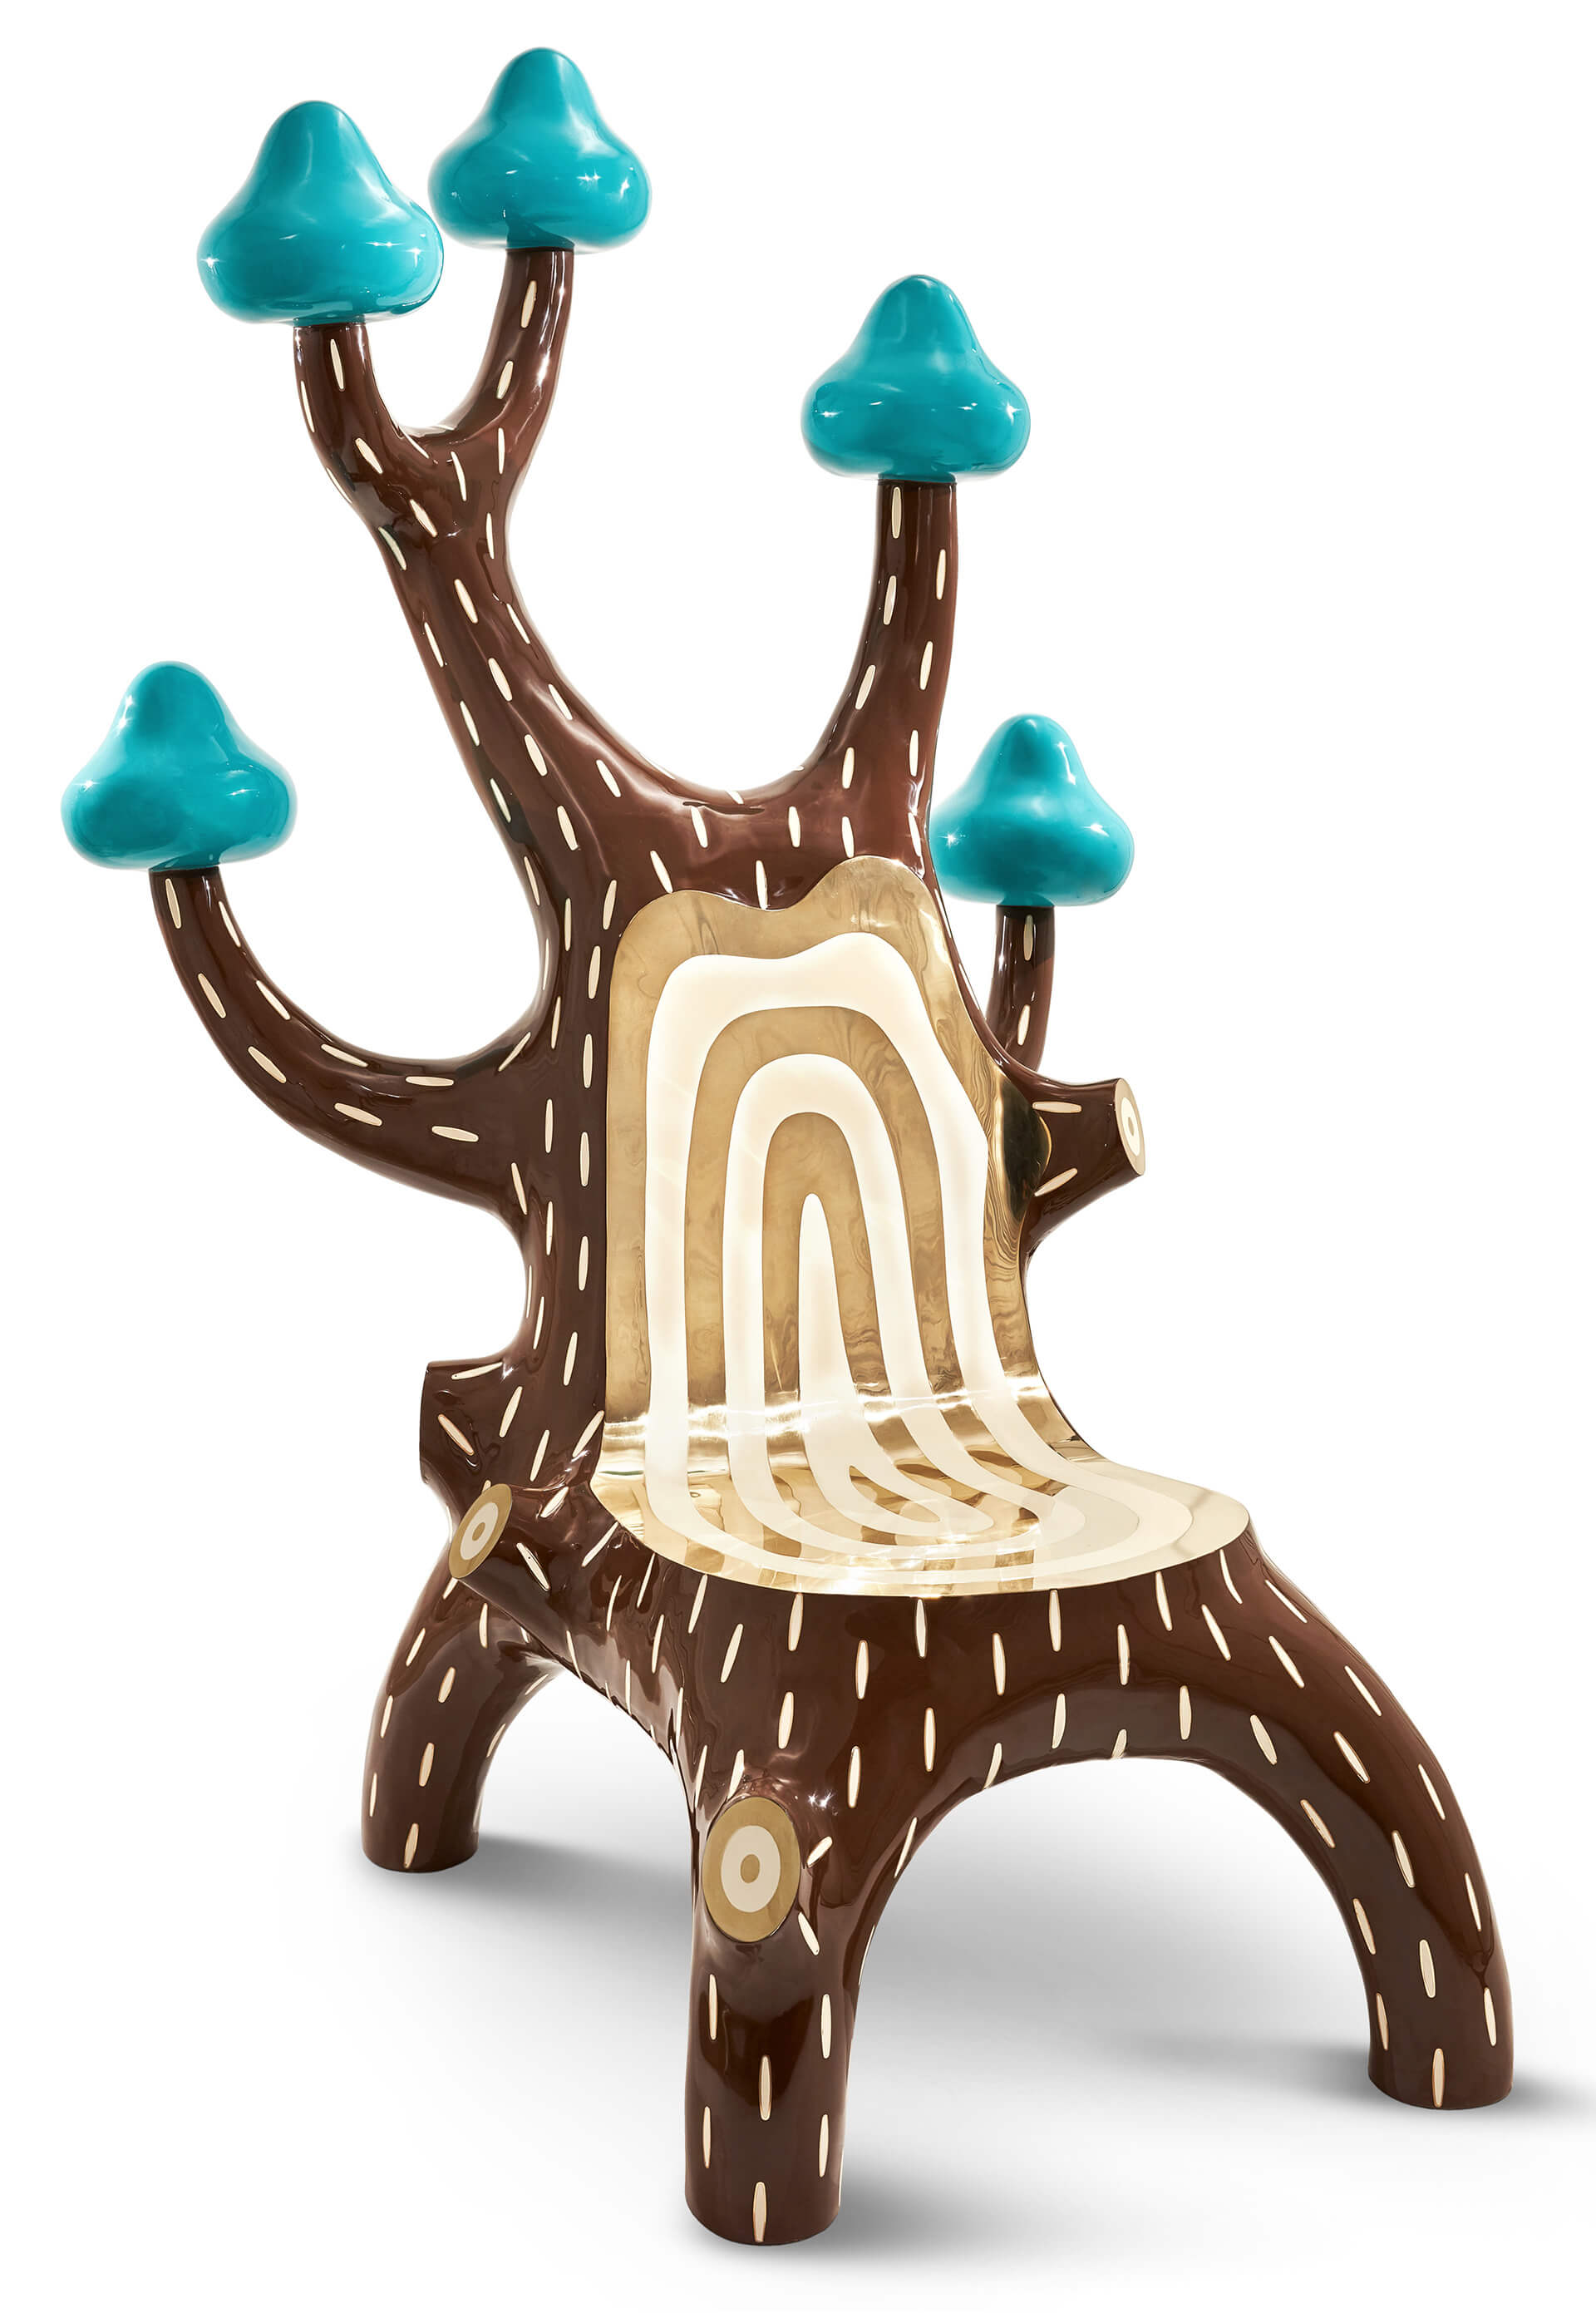 The famous Forest Chair by designer Marcantonio Raimondi Malerba, for Scarlet Splendour | Moments of Affection: Milanese Alliances (M.A.M.A.) | STIRworld